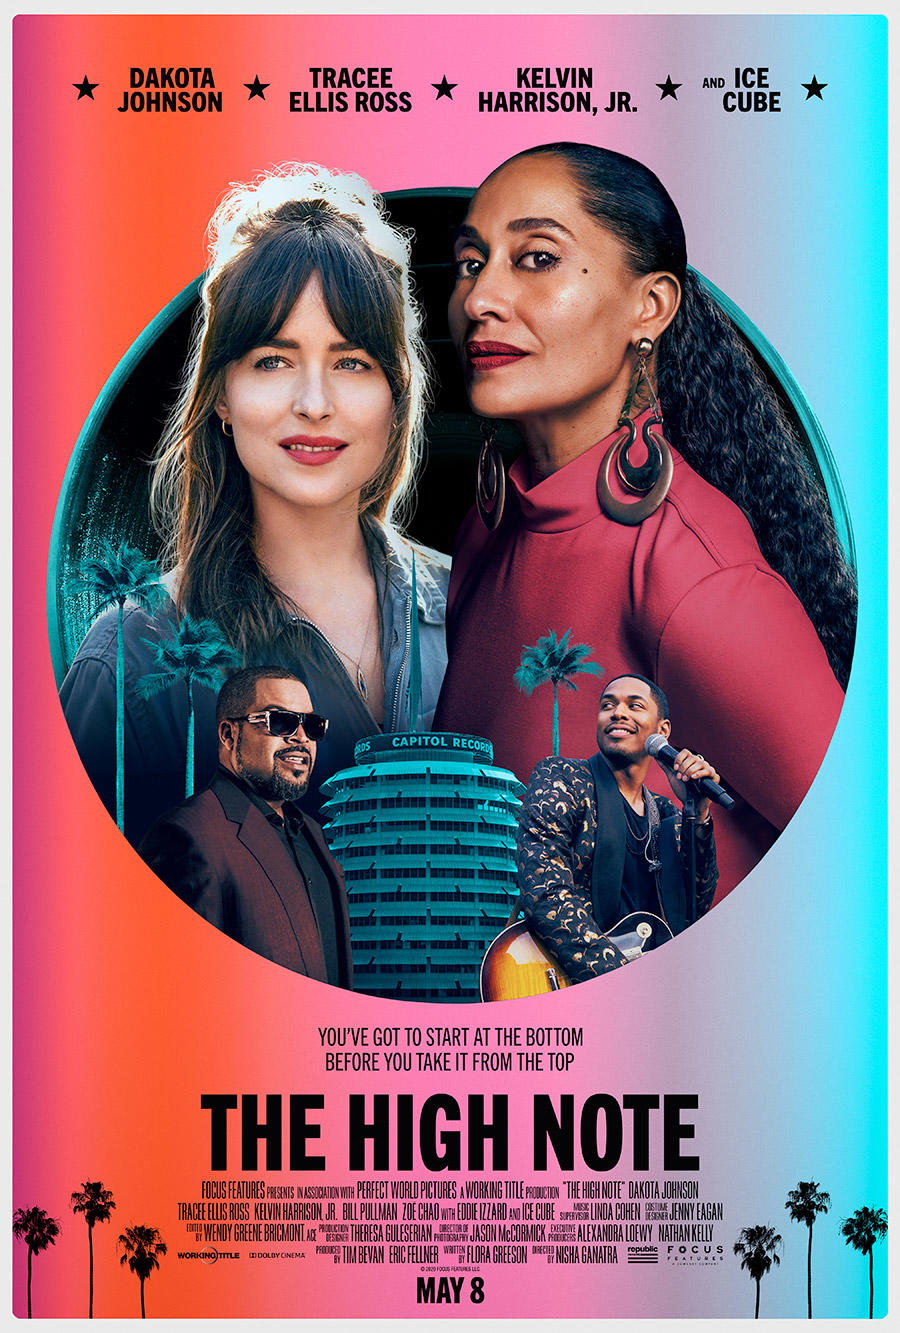 The High Note poster art